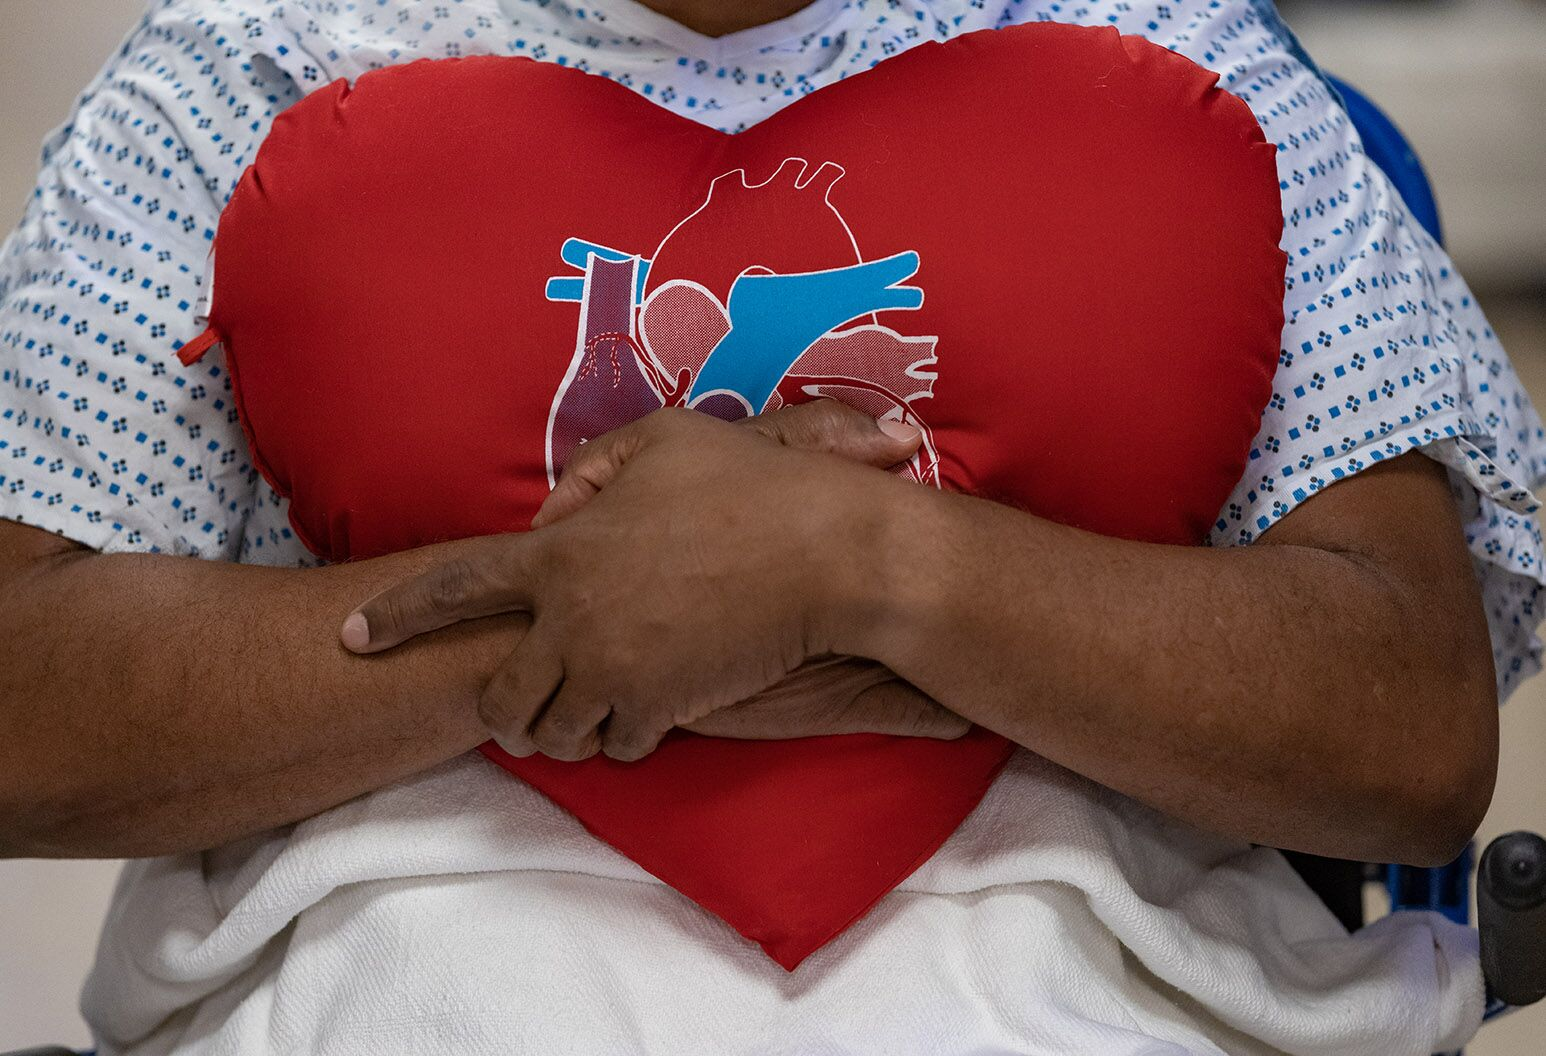 Close up of a patient's chest. They have their arms crossed around a heart shaped pillow.